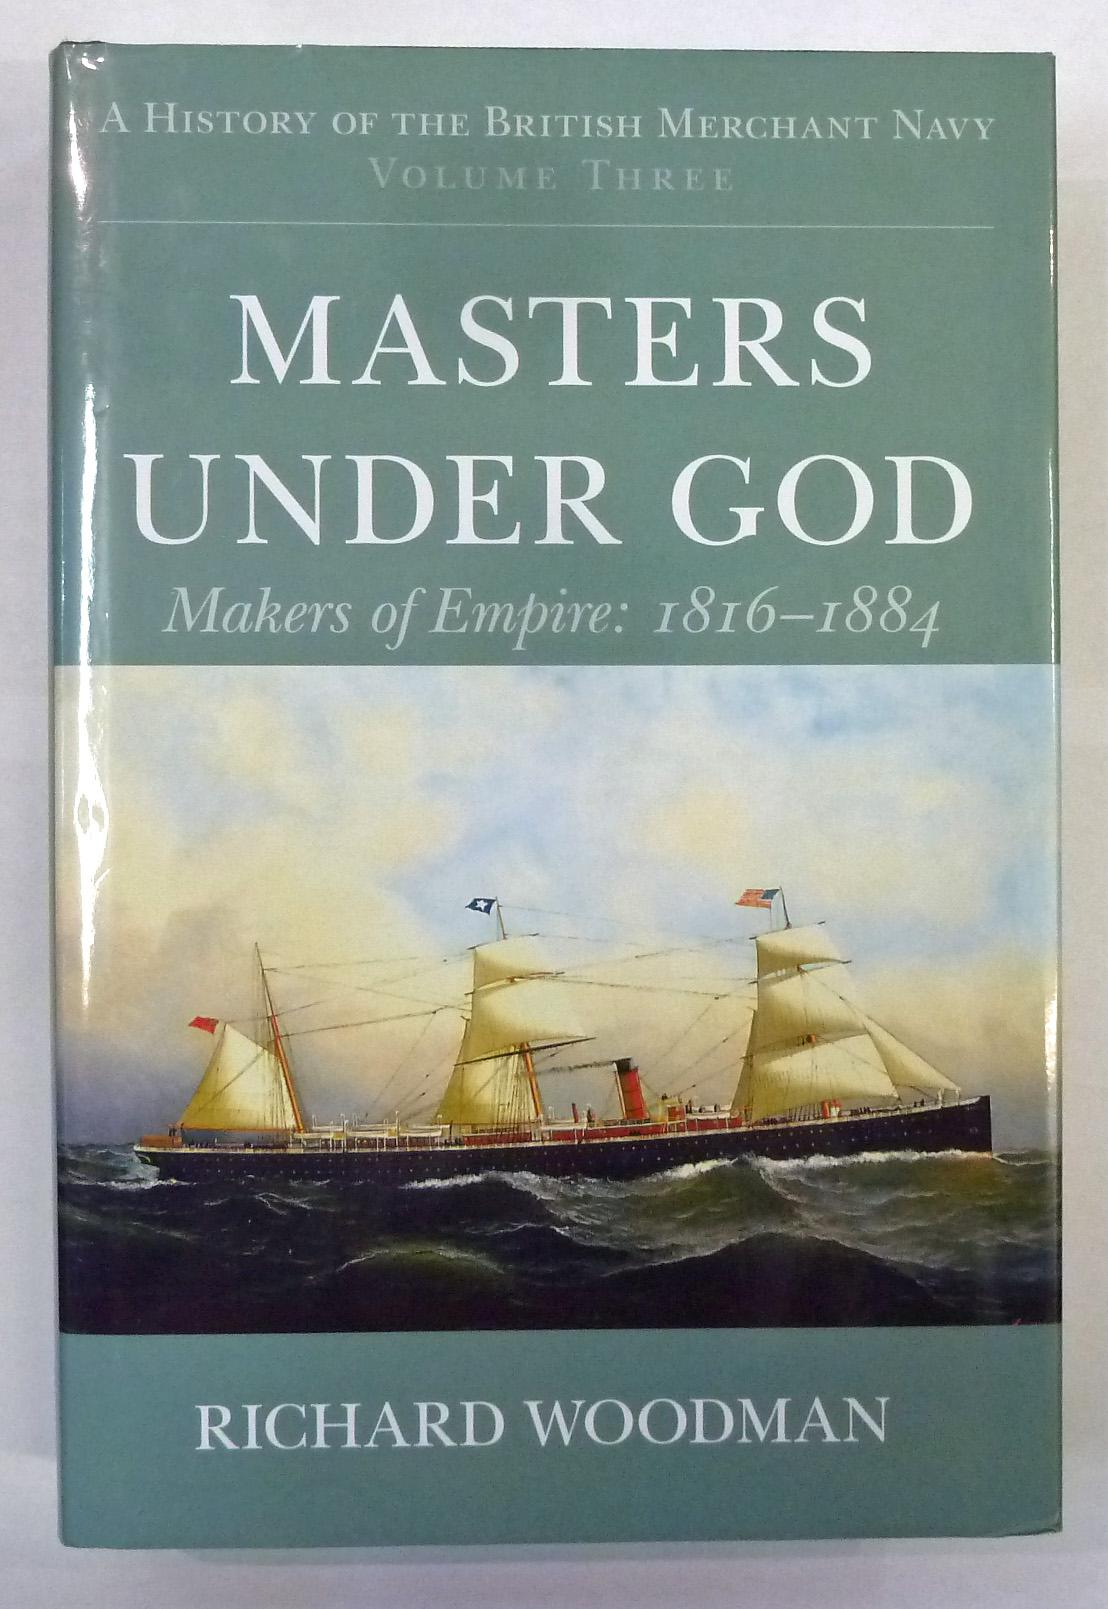 A History Of The British Merchant Navy Volume Three, Masters Under God Makers of Empire 1816-1884